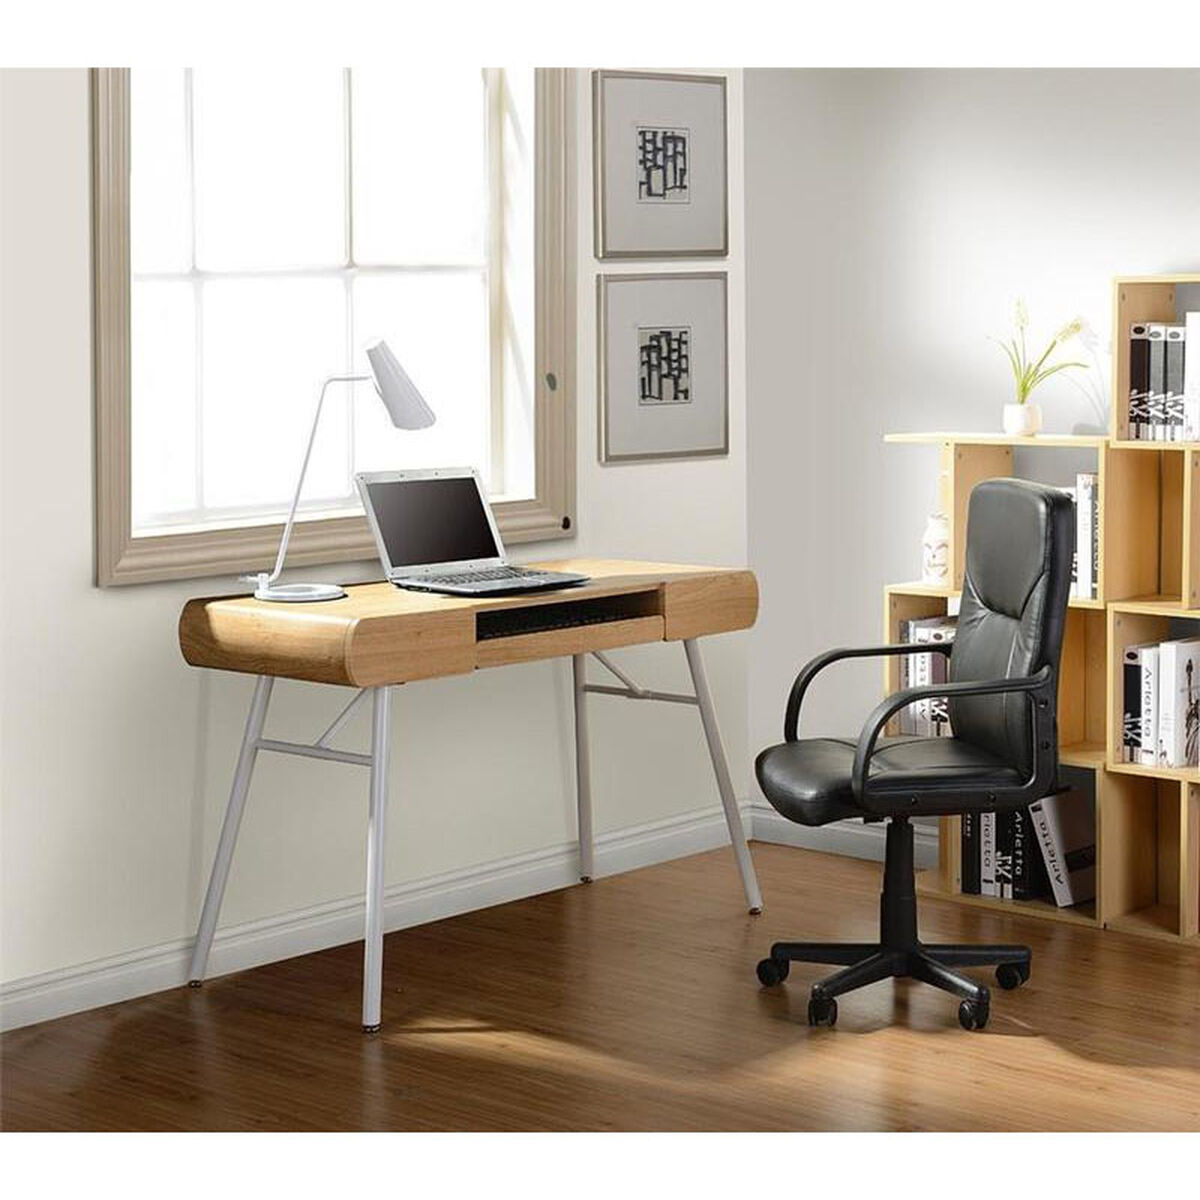 Our Techni Mobili Computer Desk With Storage And File Cabinet Pine Is On Now